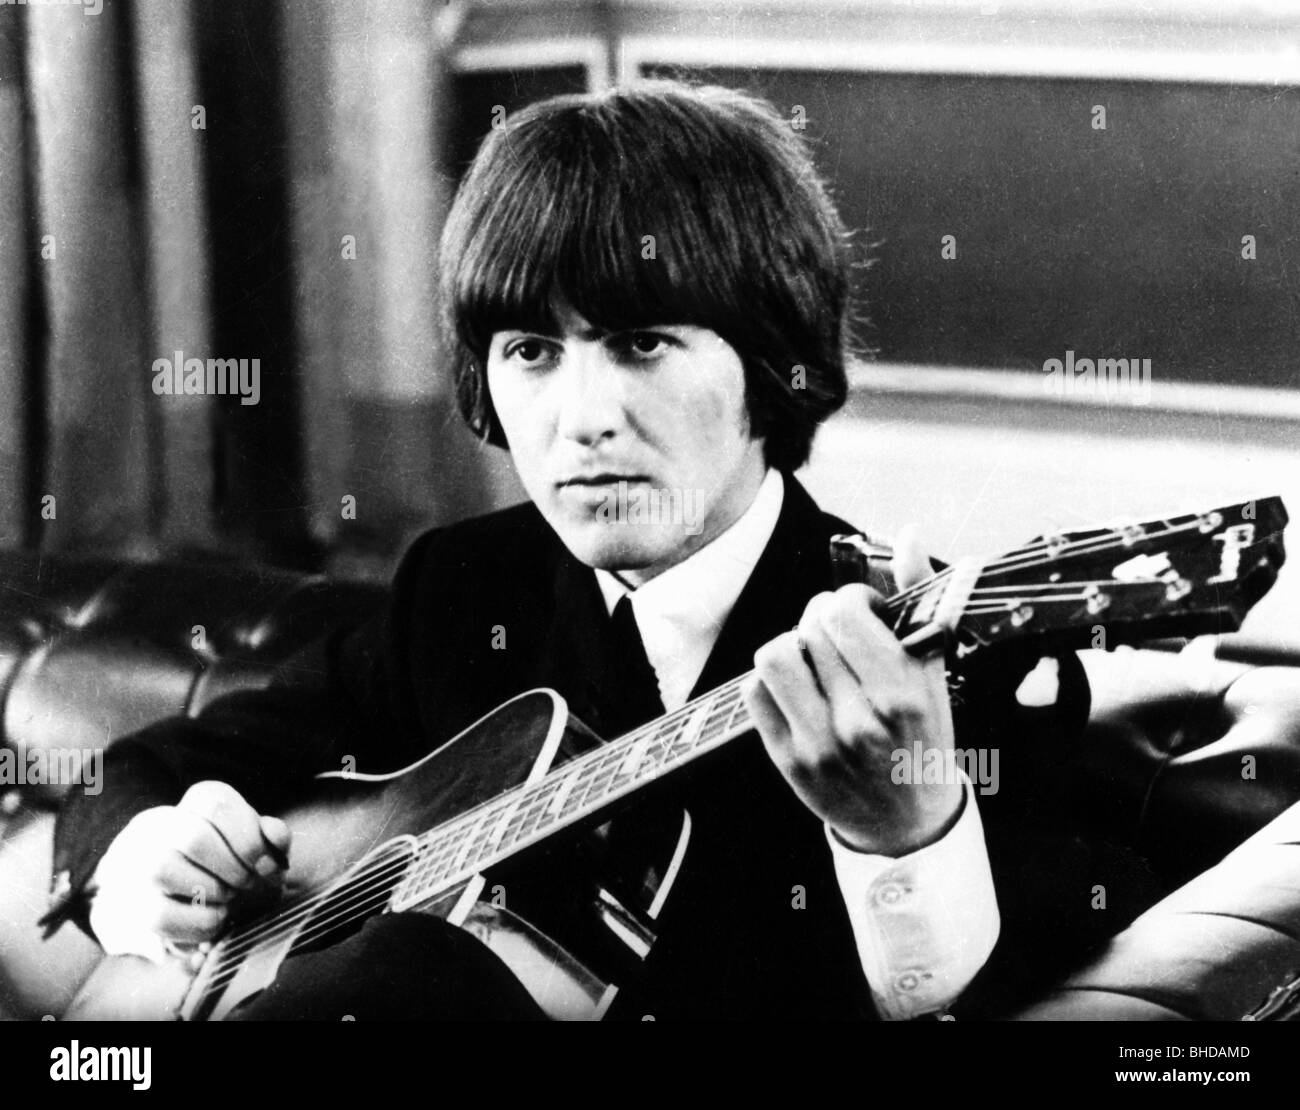 Harrison, George, 25.2.1943 - 29.11.2001, British musician, half length with guitar, Munich, 1966, , Additional - Stock Image